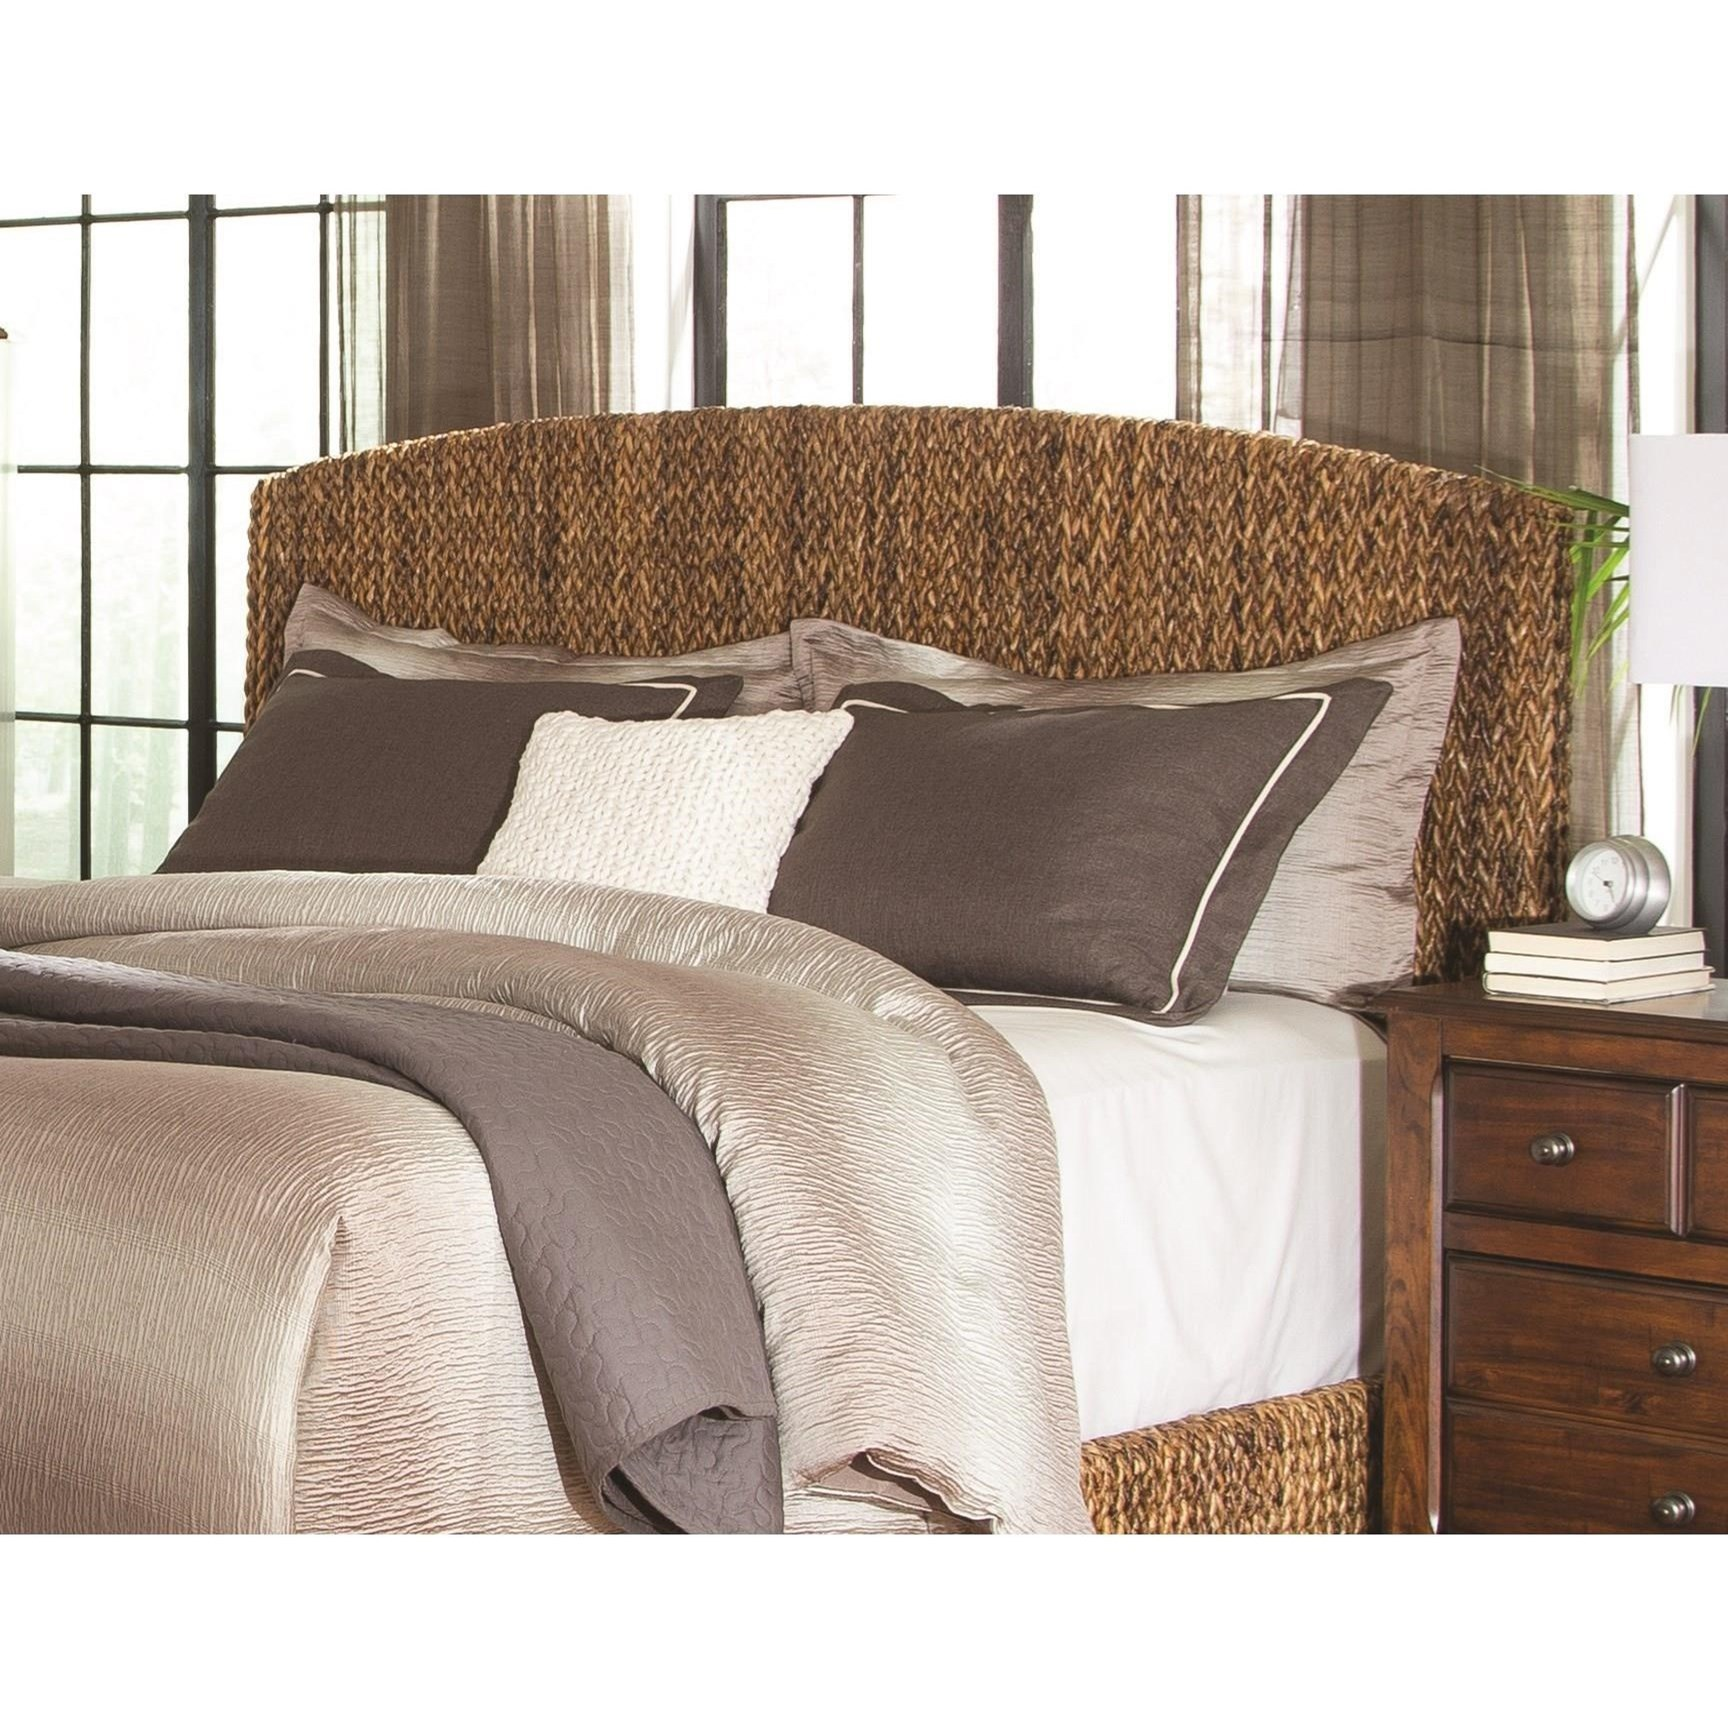 Laughton King Headboard by Coaster at Northeast Factory Direct